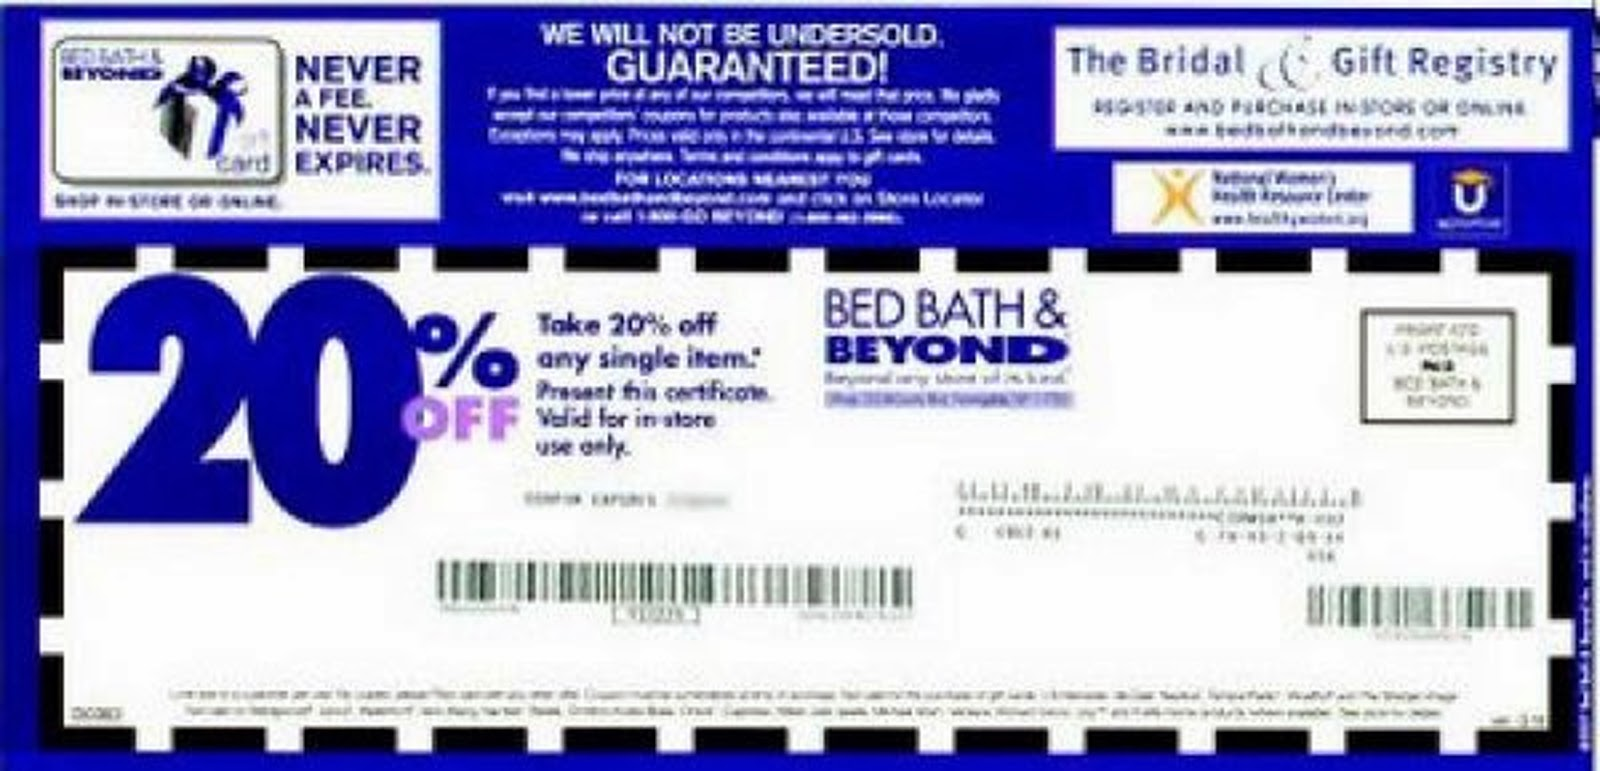 Bed Bath And Beyond Coupon December 2013